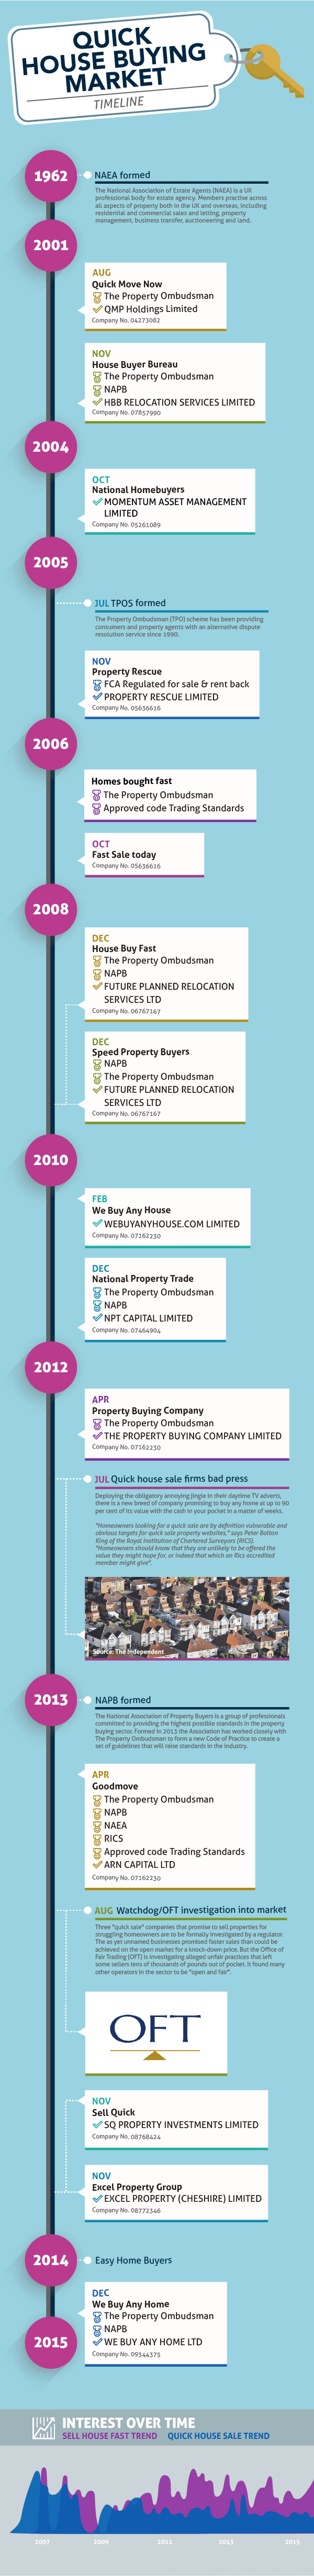 the history of house buyers in the uk